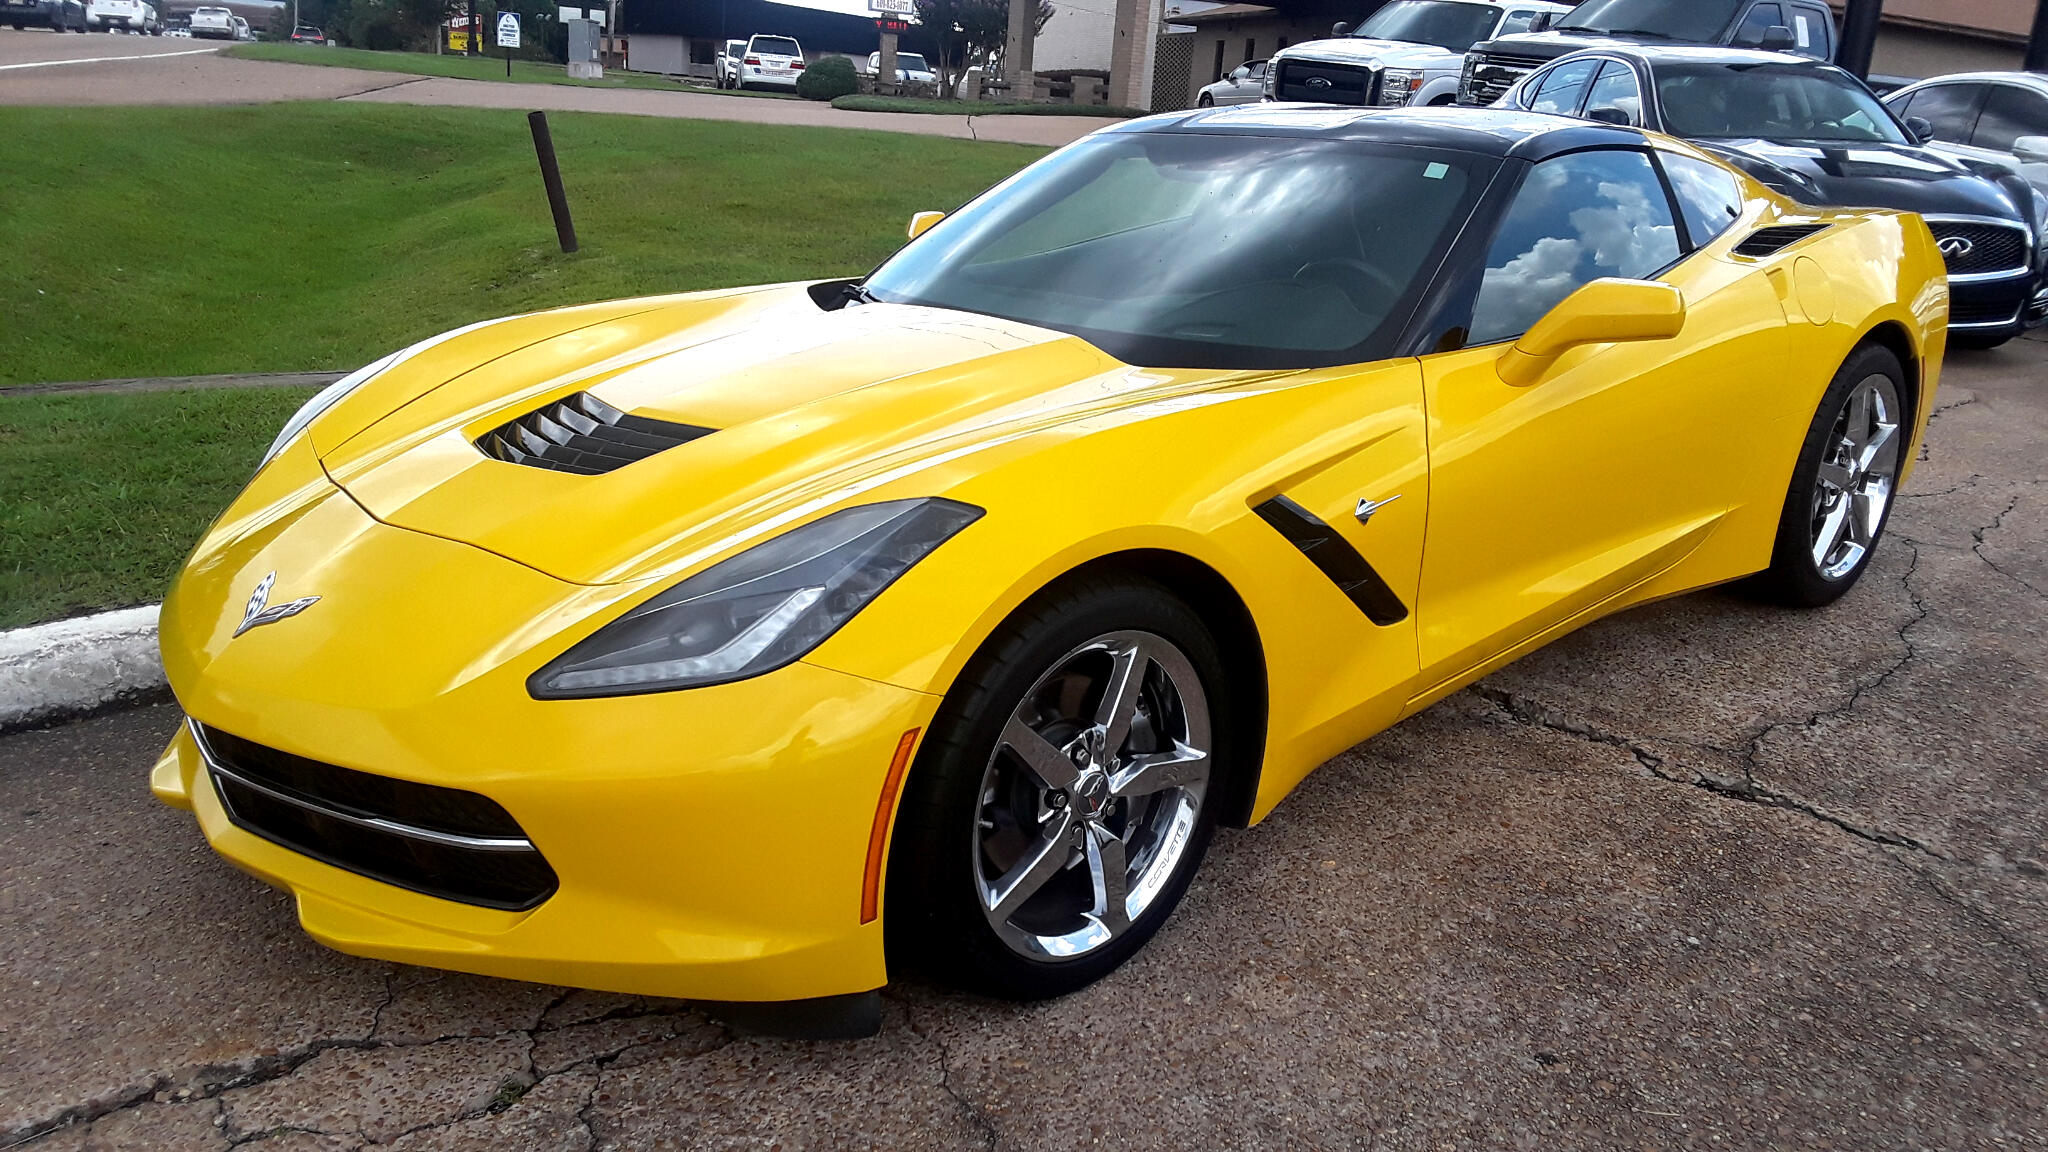 2015 Chevrolet Corvette 2dr Stingray Cpe w/3LT